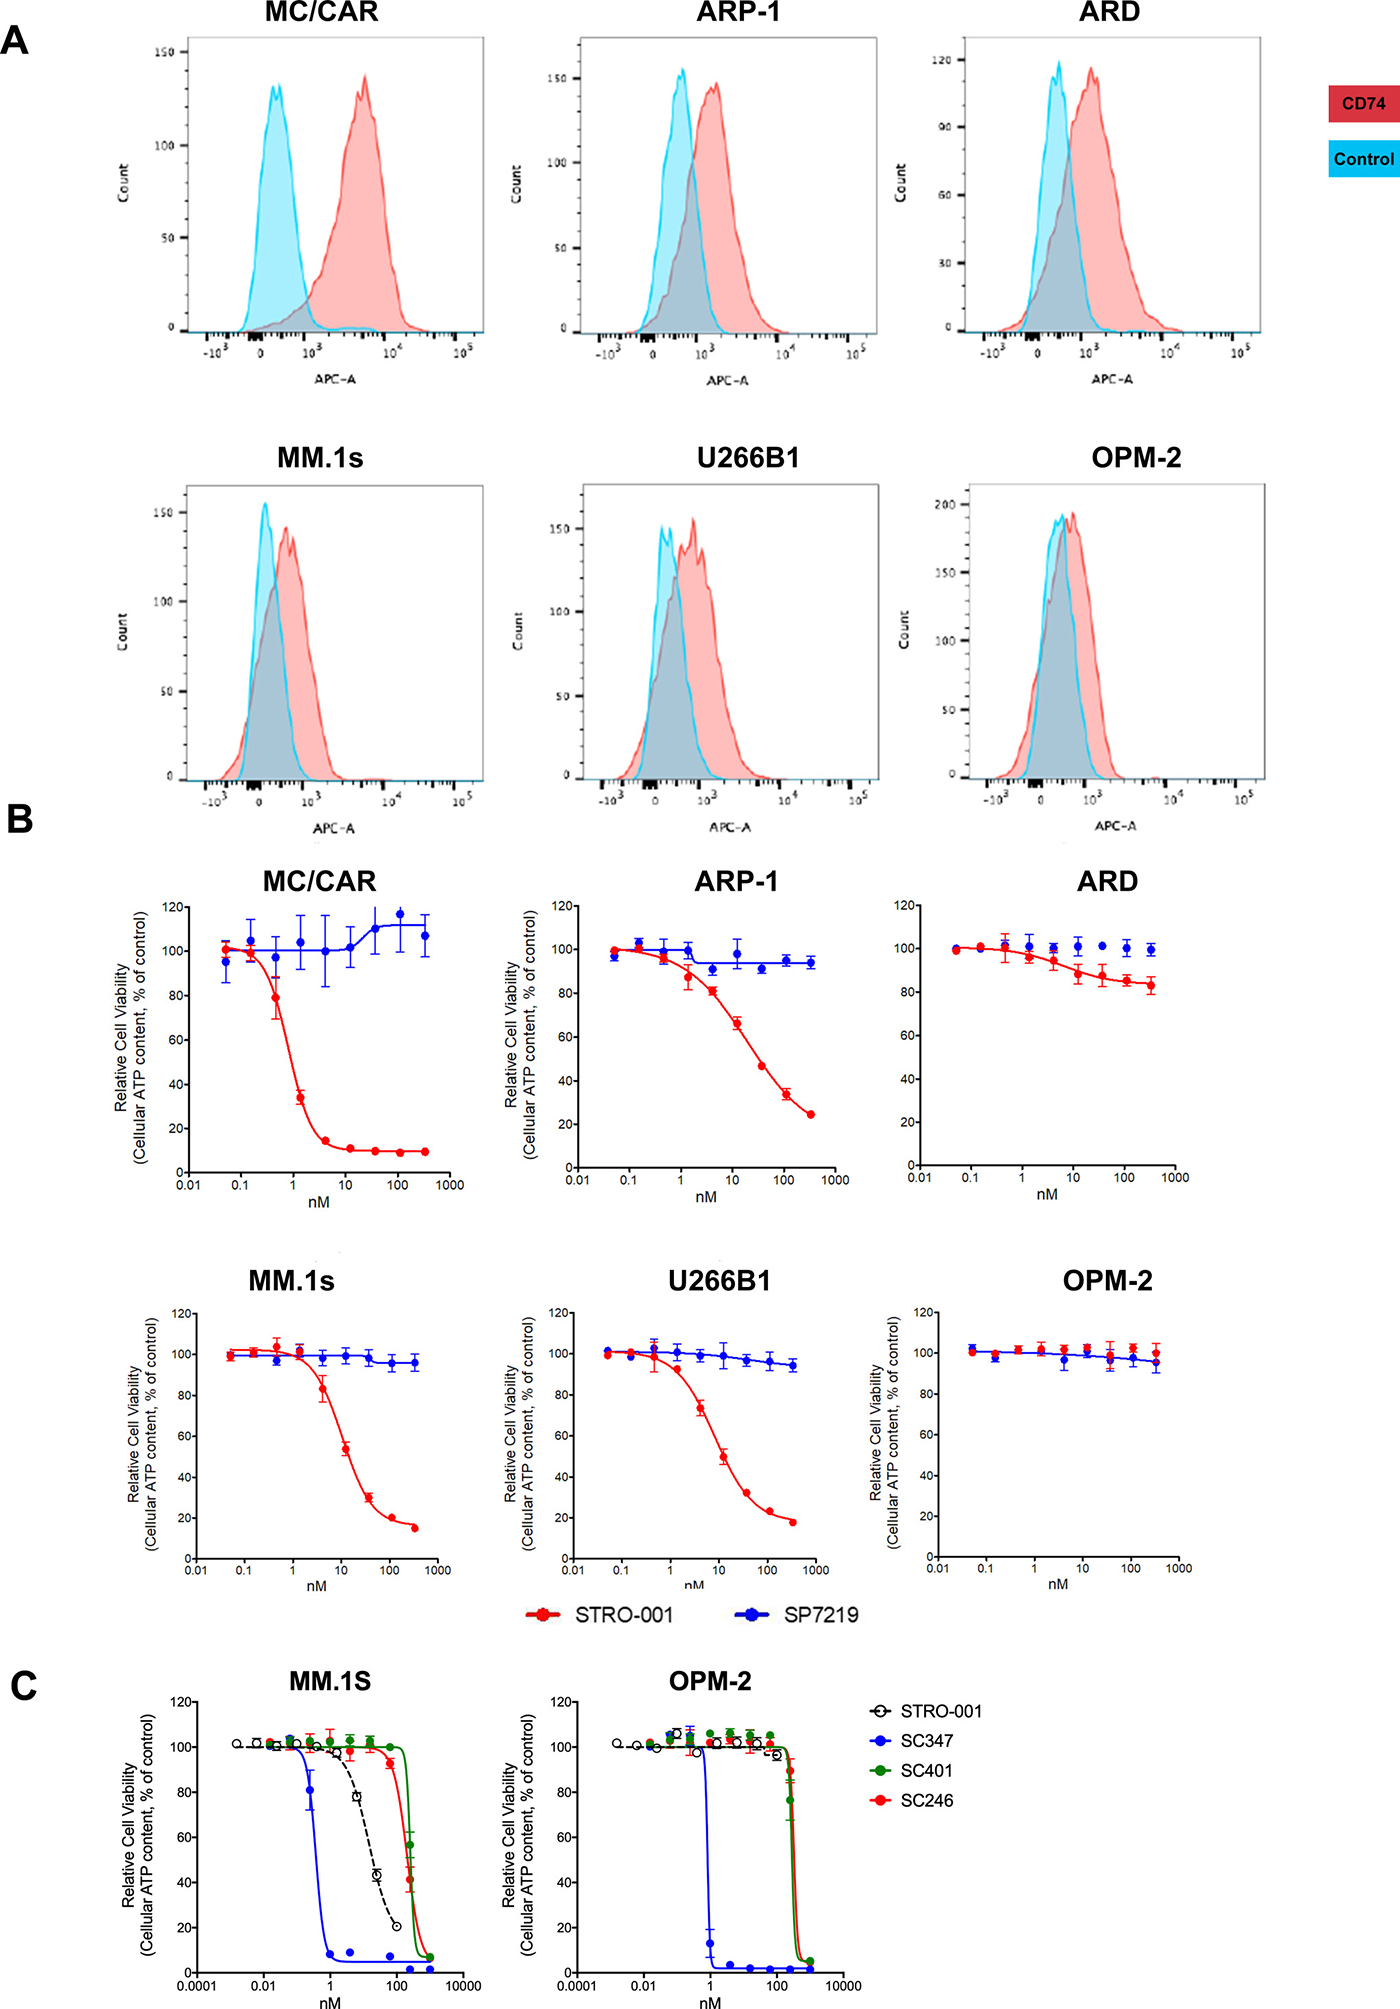 Expression of CD74 in multiple myeloma cell lines and cytotoxicity of STRO-001 and catabolites.